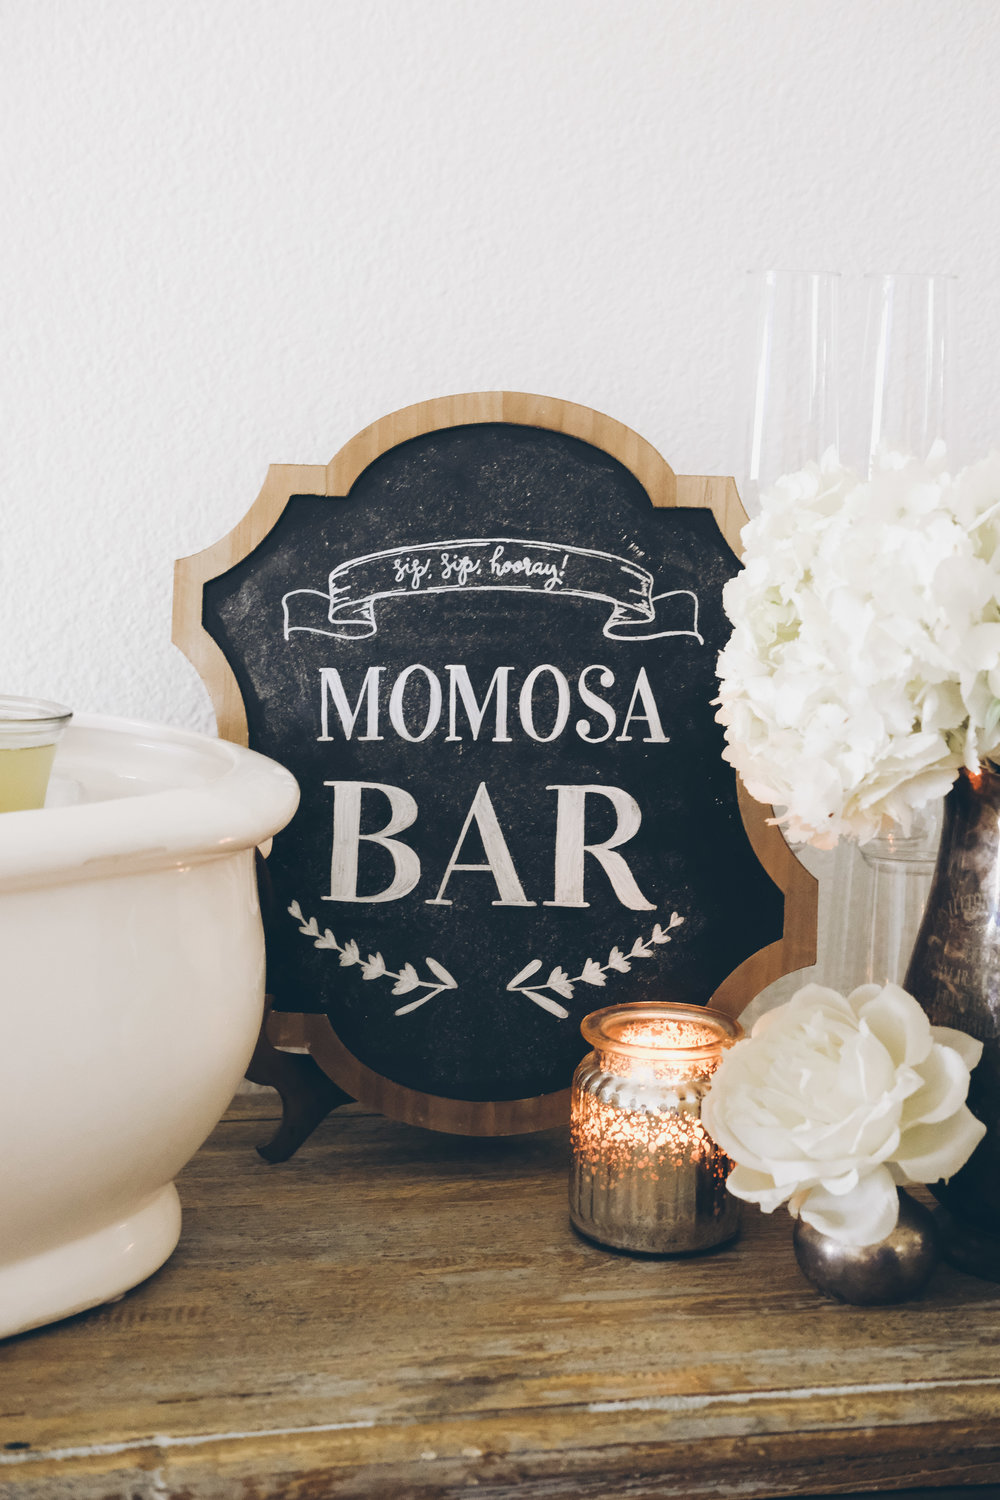 French Market Baby Shower.  Black and white boy baby shower.  French themed baby shower.  Neutral baby shower.  Momosa bar chalkboard sign. Baby shower mimosa bar.